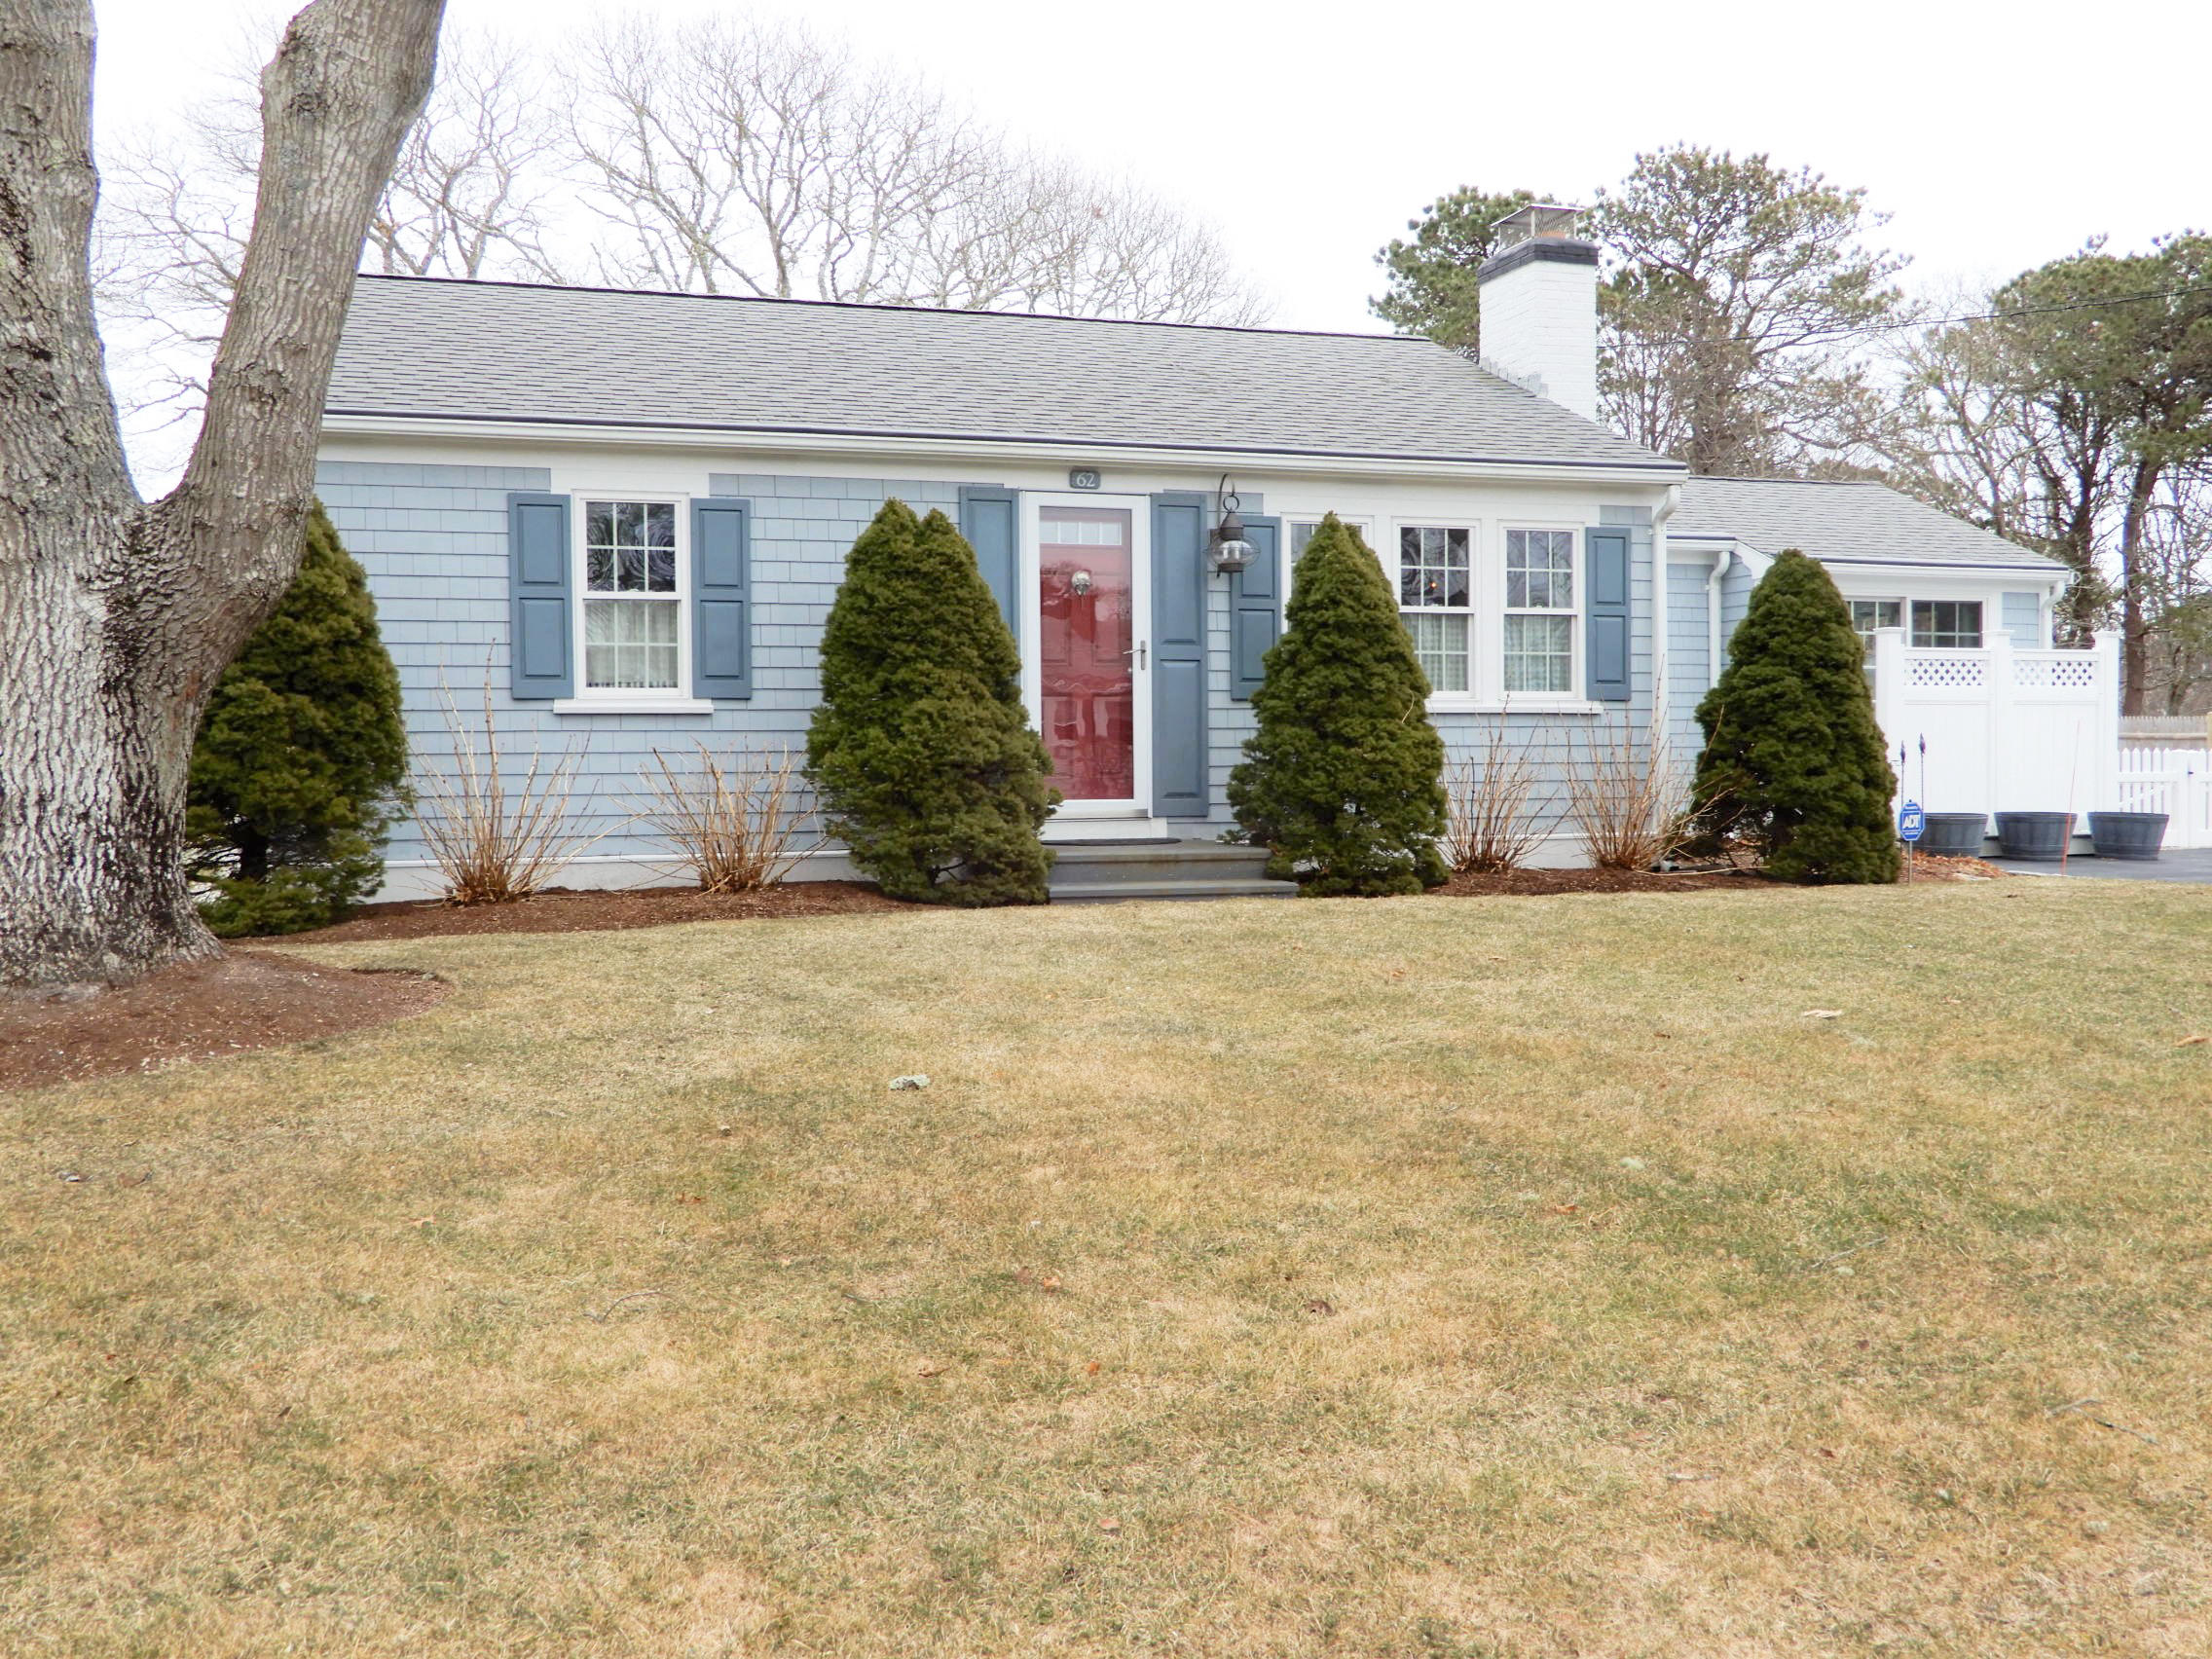 62-crowes-purchase-road-west-yarmouth-ma-02673